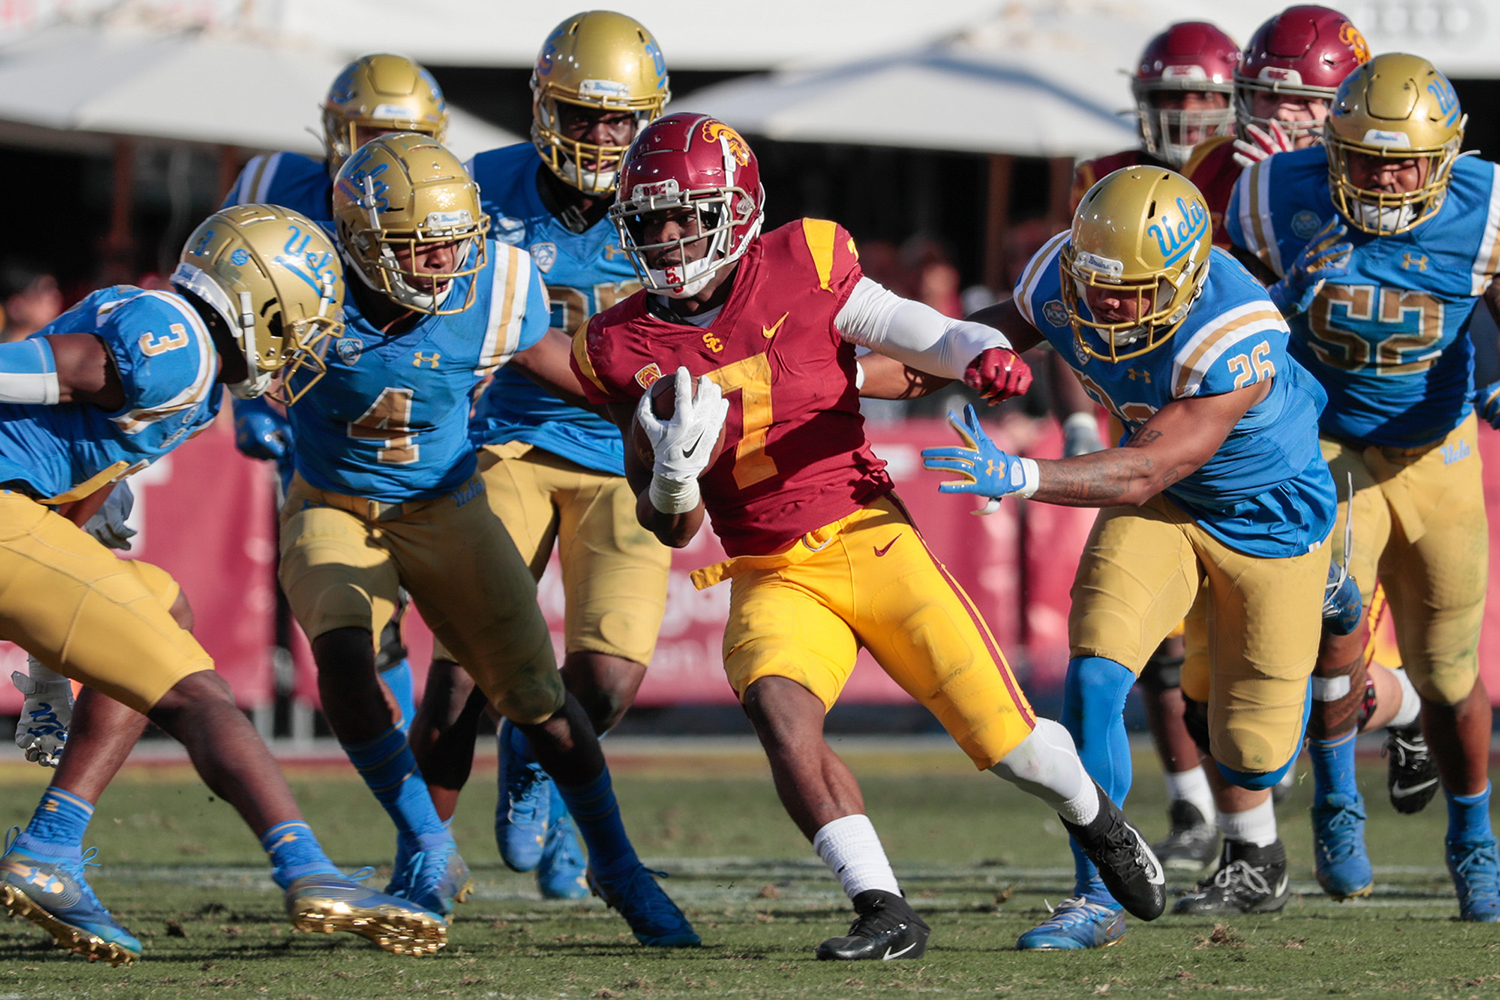 USC running back Stephen Carr (7) picks up second-half yardage against UCLA at the Los Angeles Memorial Coliseum on Saturday, Nov. 23, 2019, in Los Angeles. USC won, 52-35. (Robert Gauthier/Los Angeles Times/TNS)